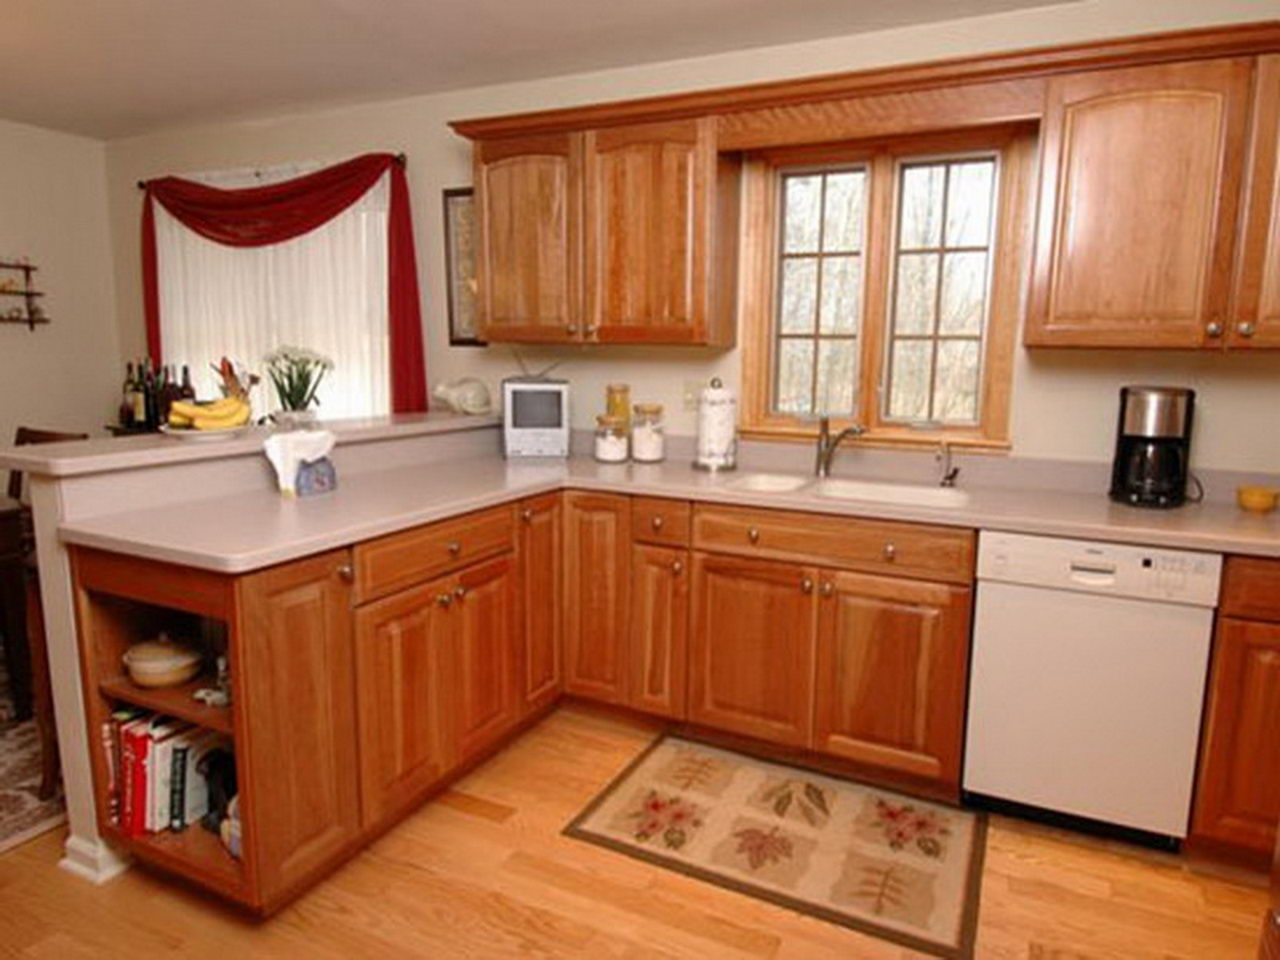 Kitchen cabinets and storage ideas homedizz for Sample small kitchen designs